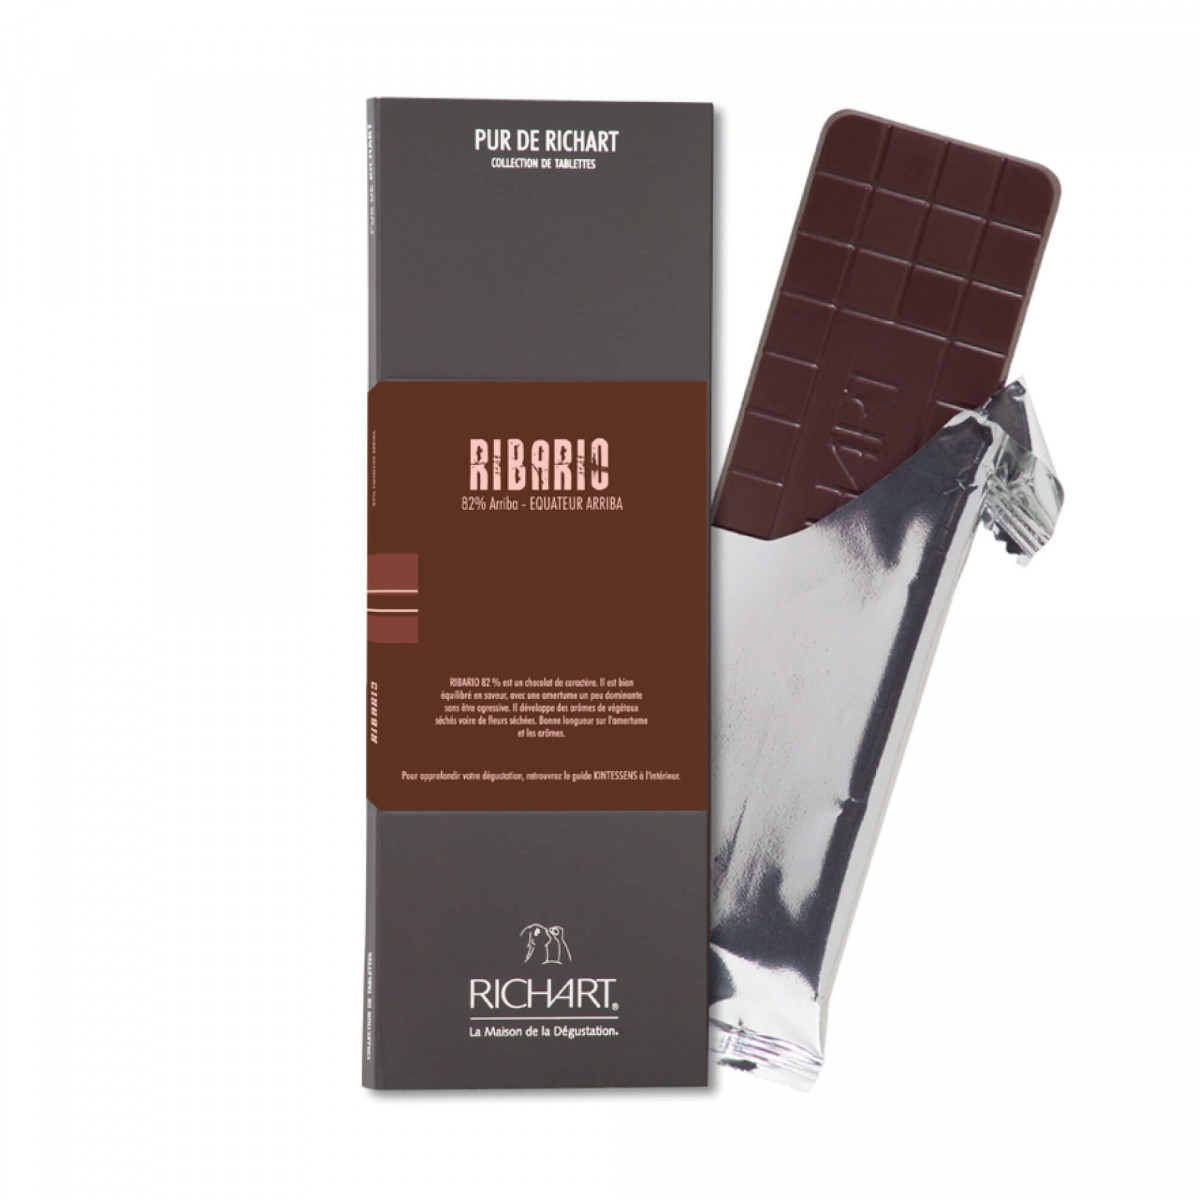 Ribario 82 Dark Chocolate Bar